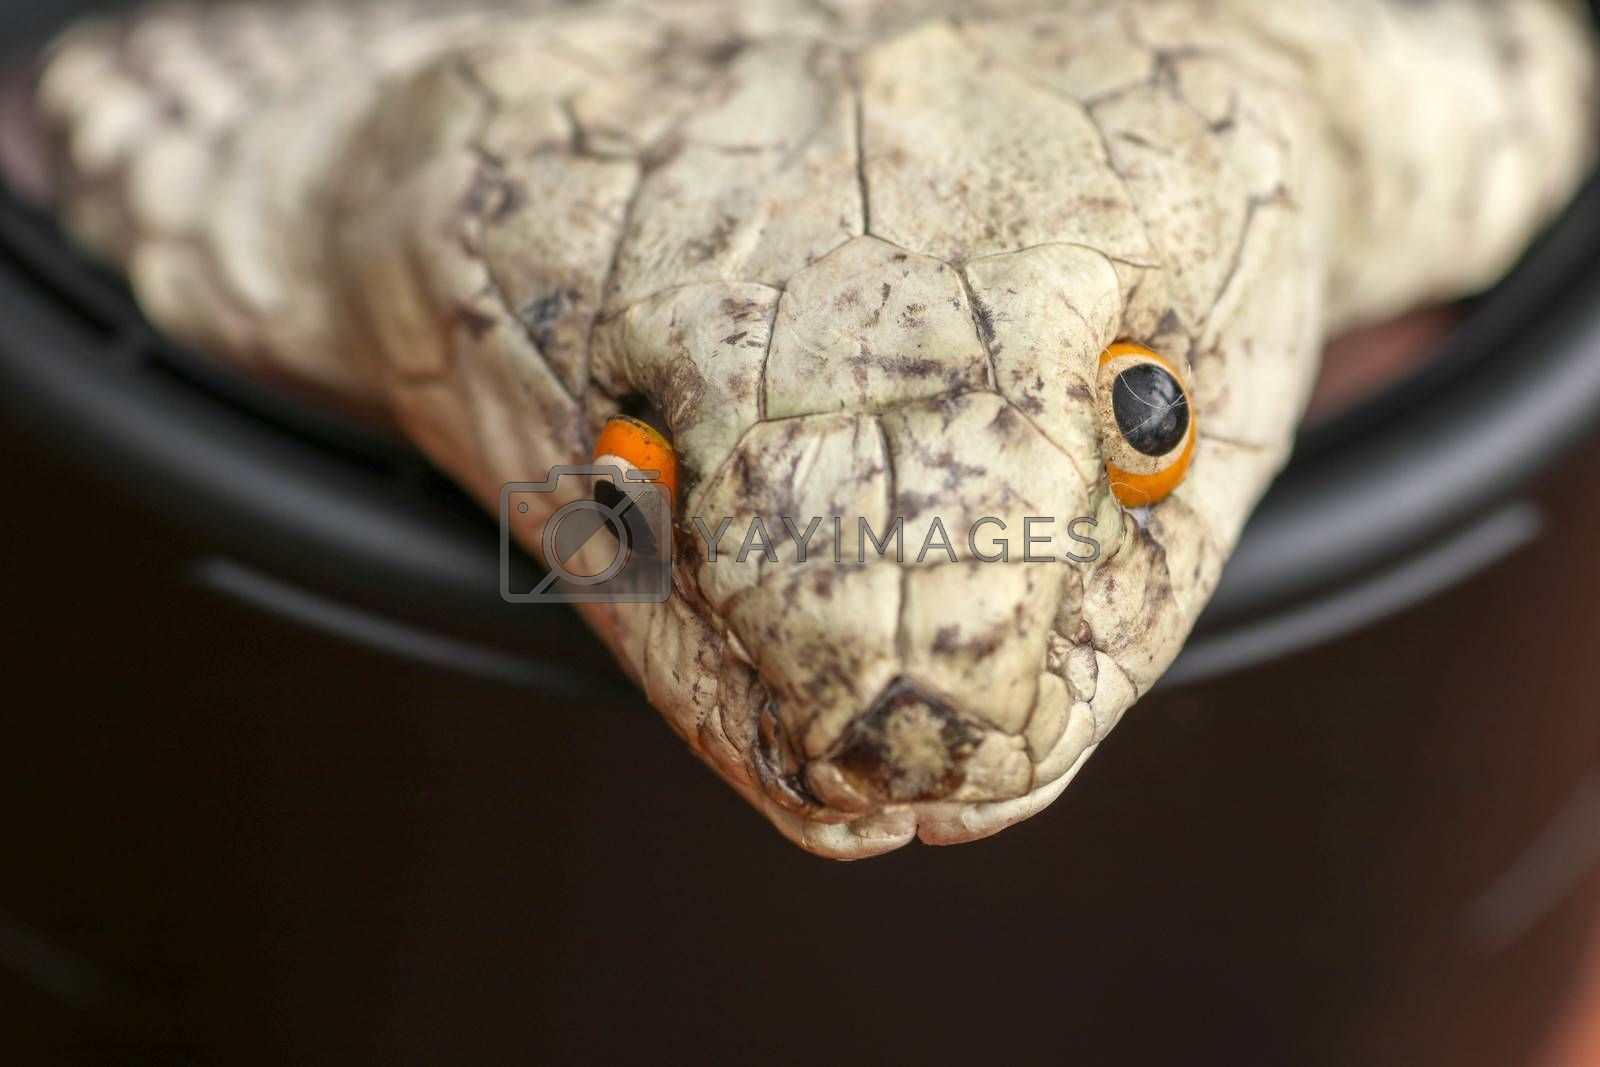 A close up head of a King Cobra. Tanned skin of Ophiophagus hannah. Belt of the most venomous snake on Bali island in Indonesia. Product from leather workshop.